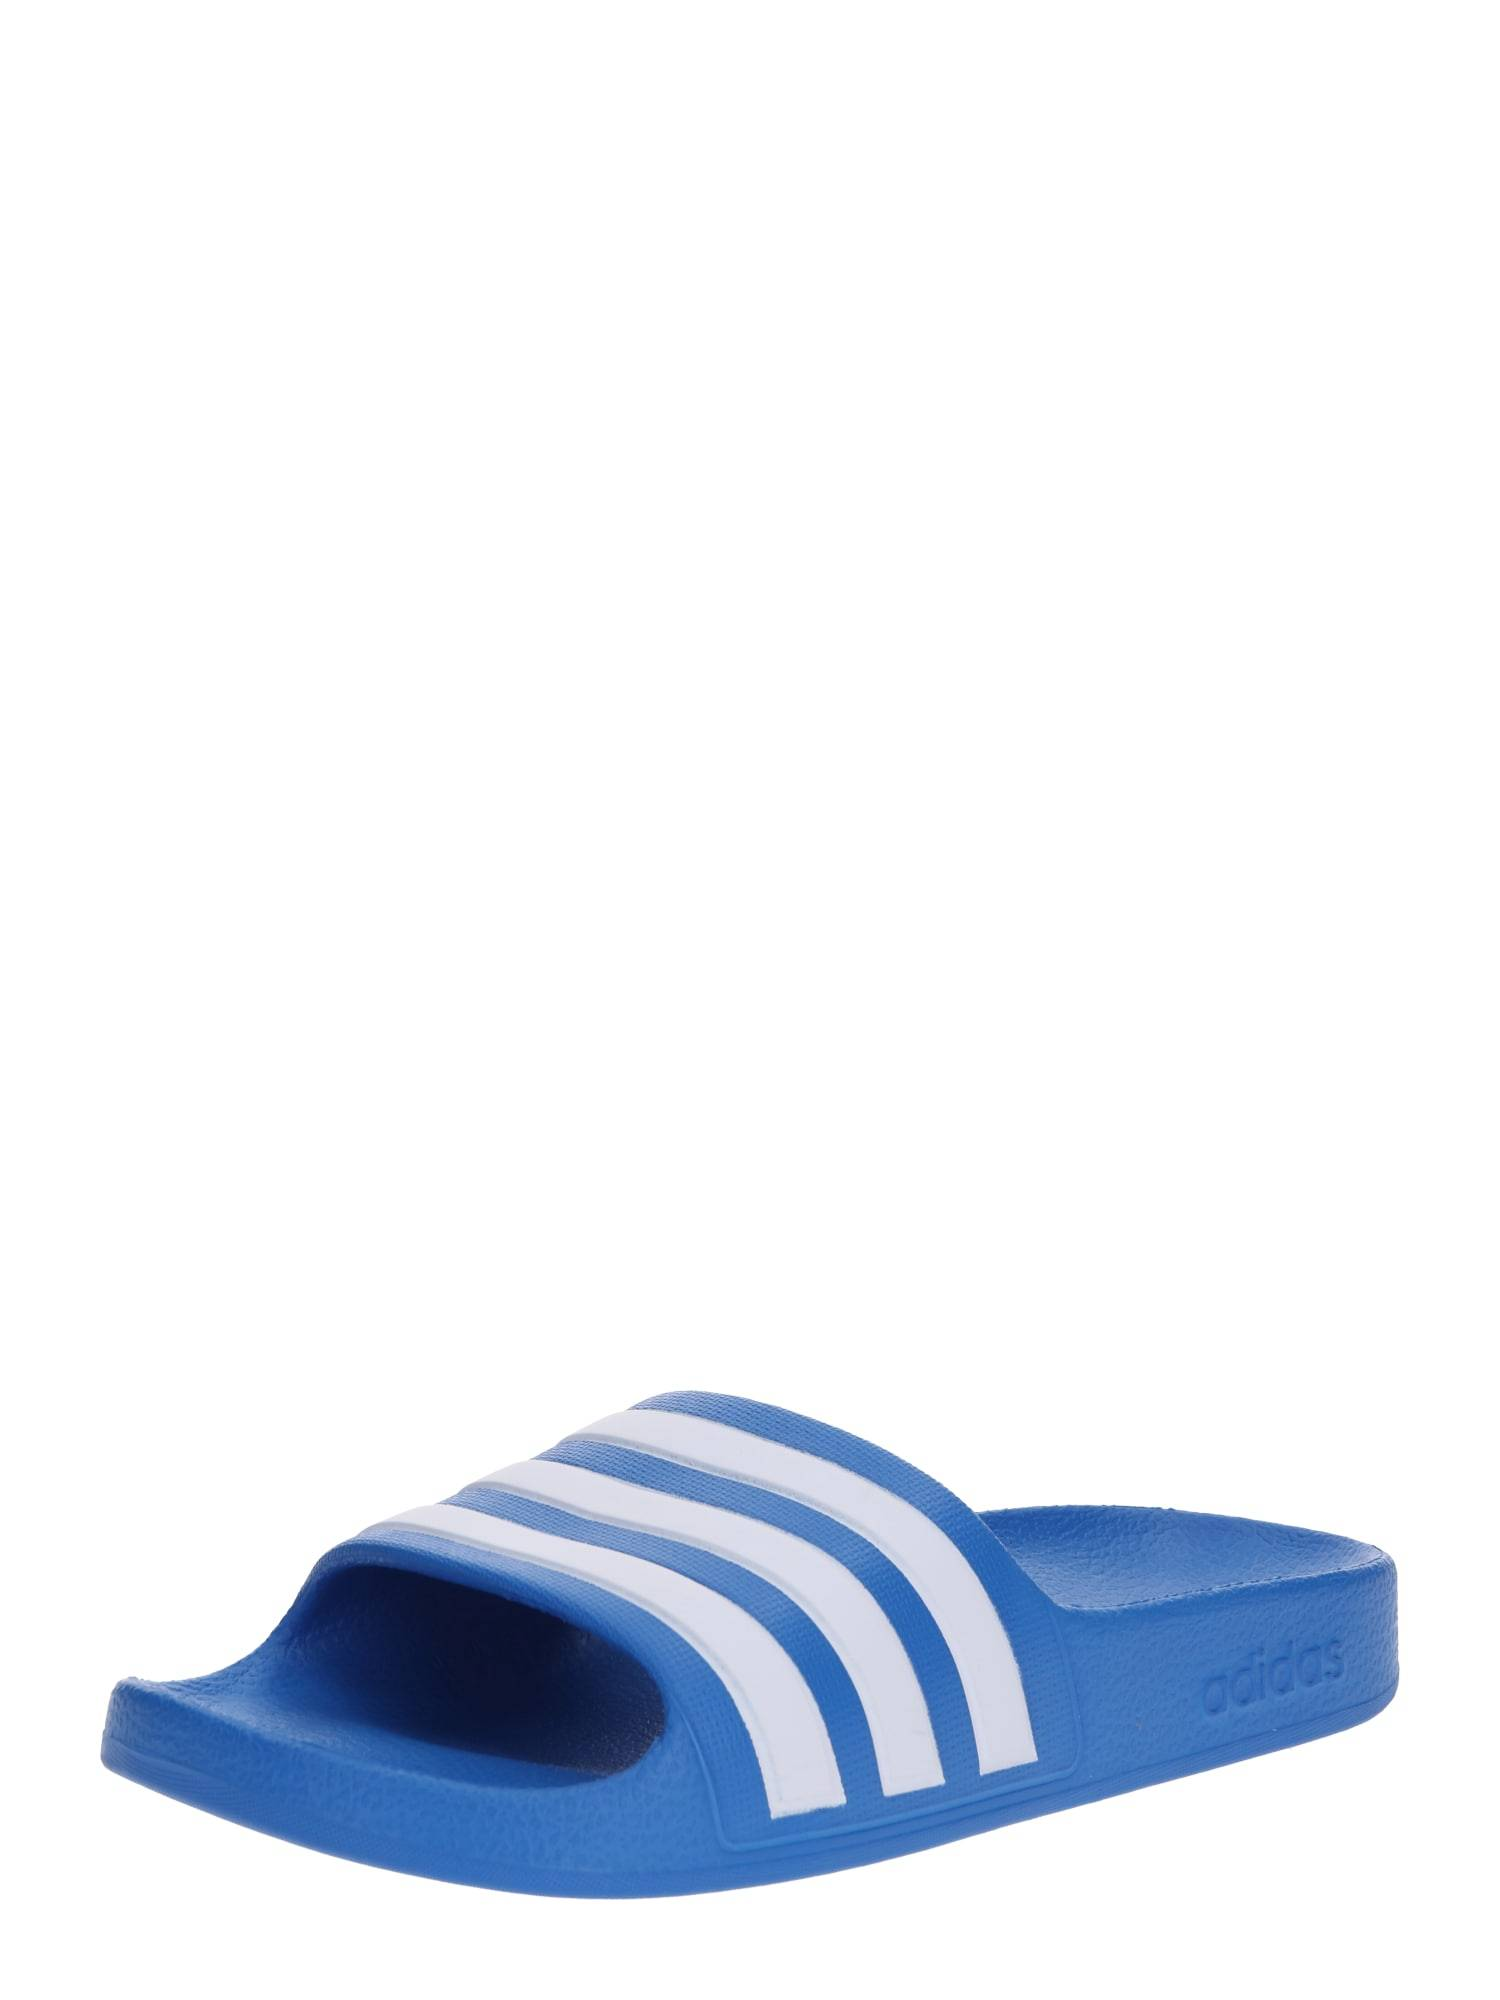 ADIDAS PERFORMANCE Claquettes / Tongs  - Bleu - Taille: 34 - boy